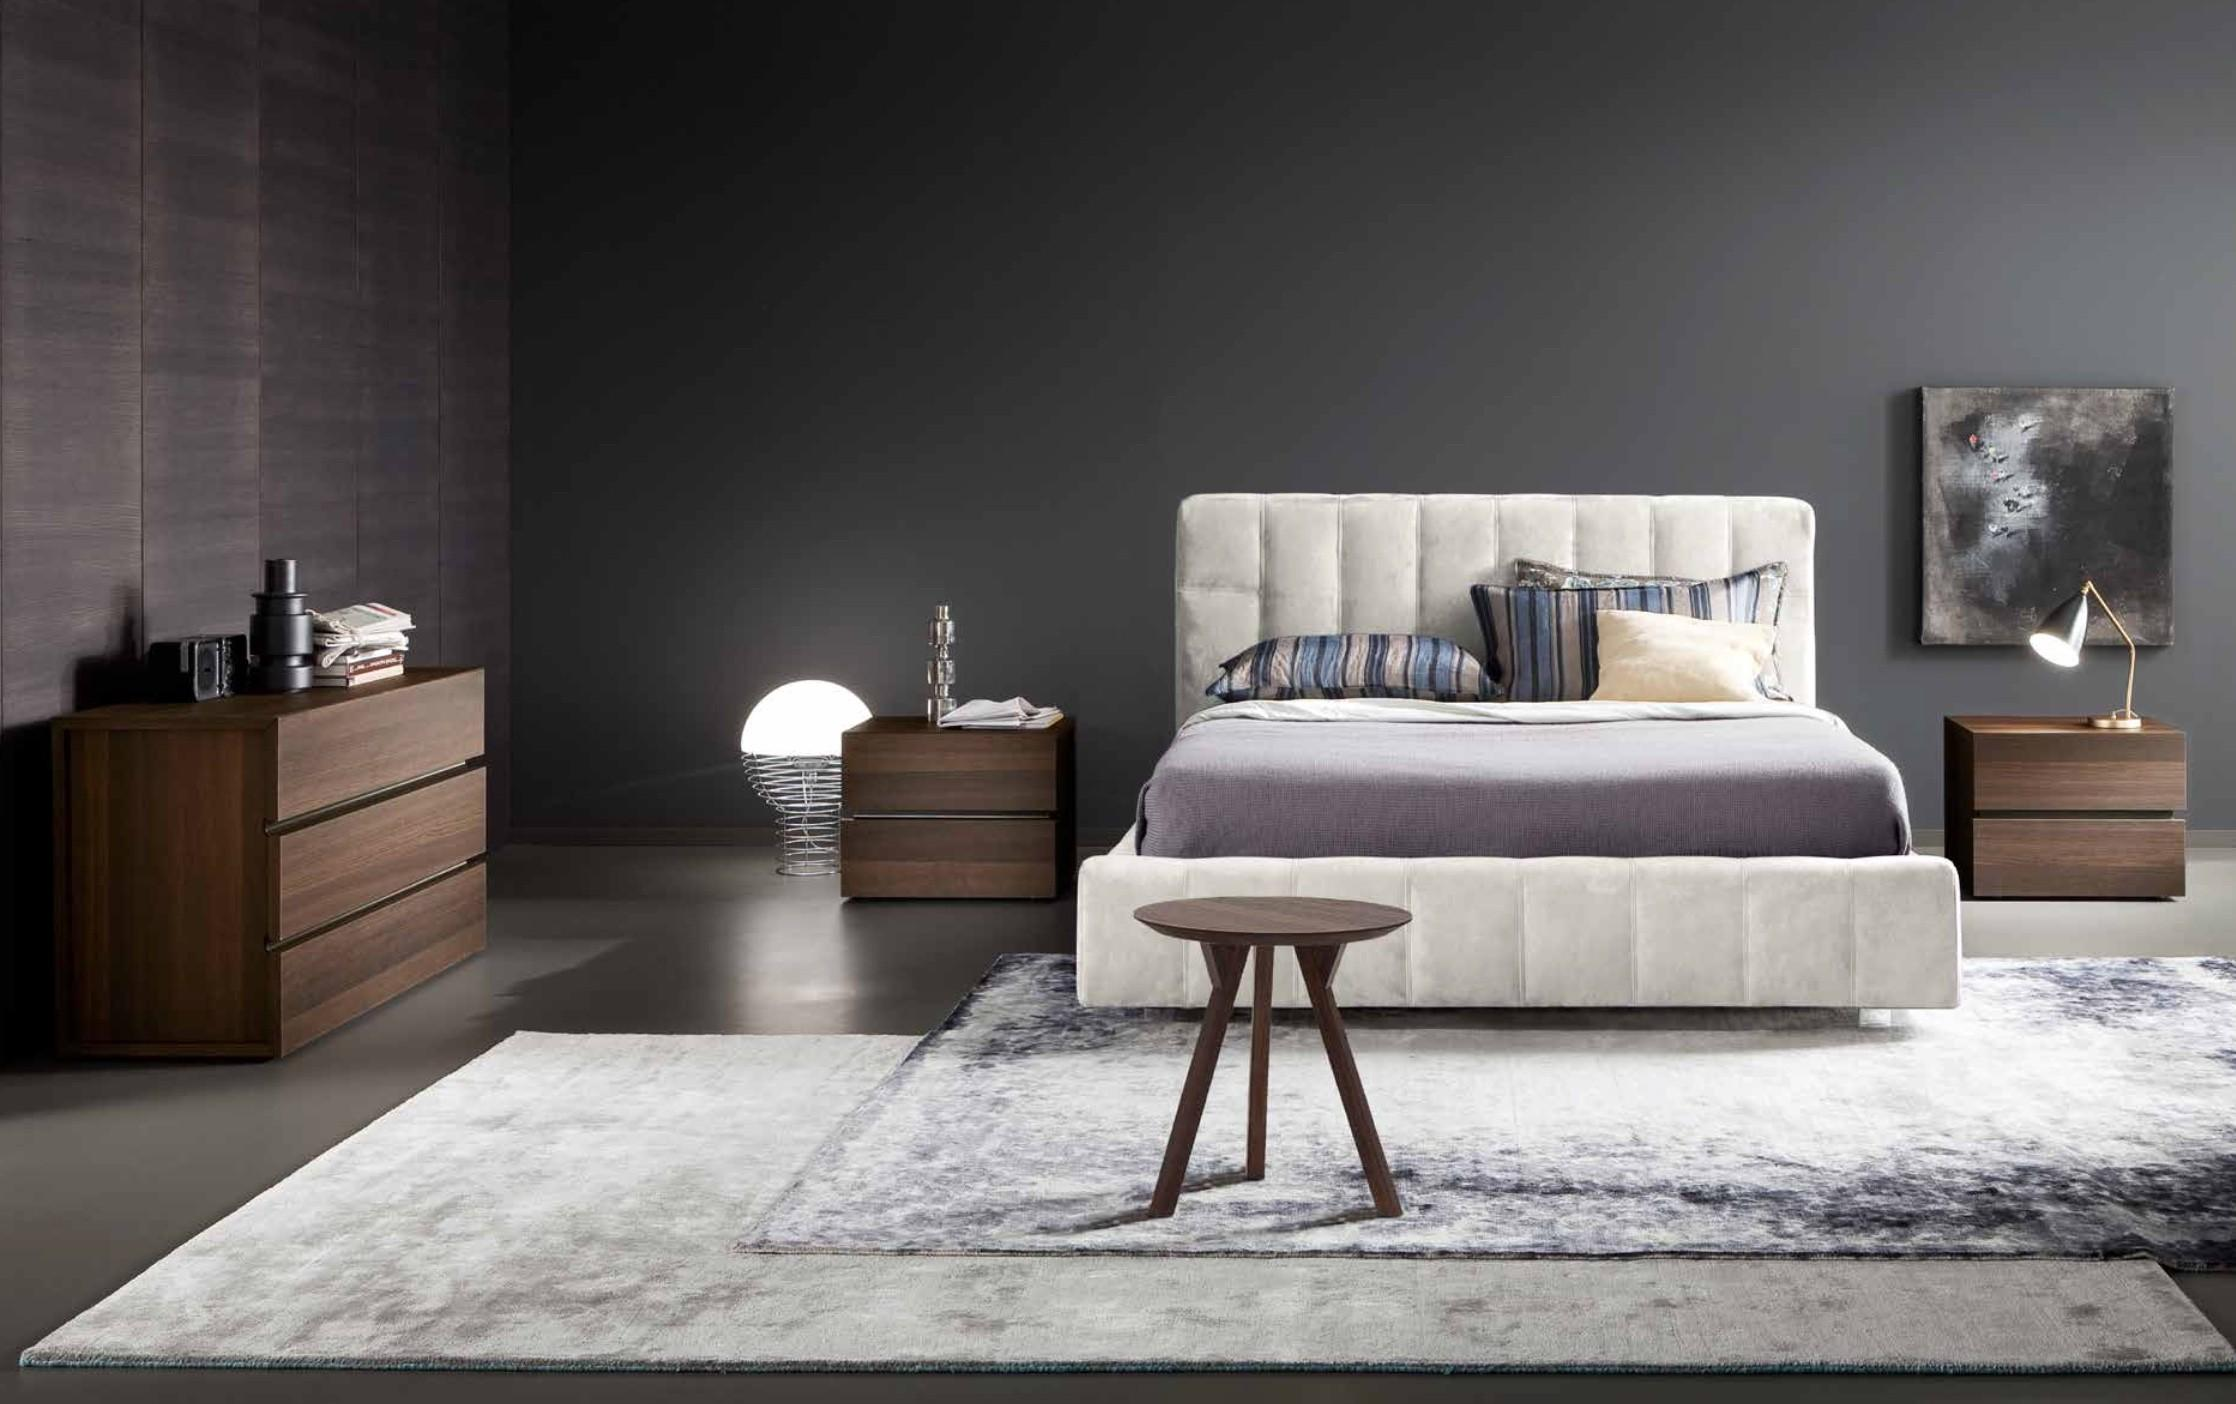 Made in Italy Wood High End Bedroom Furniture feat Wood Grain